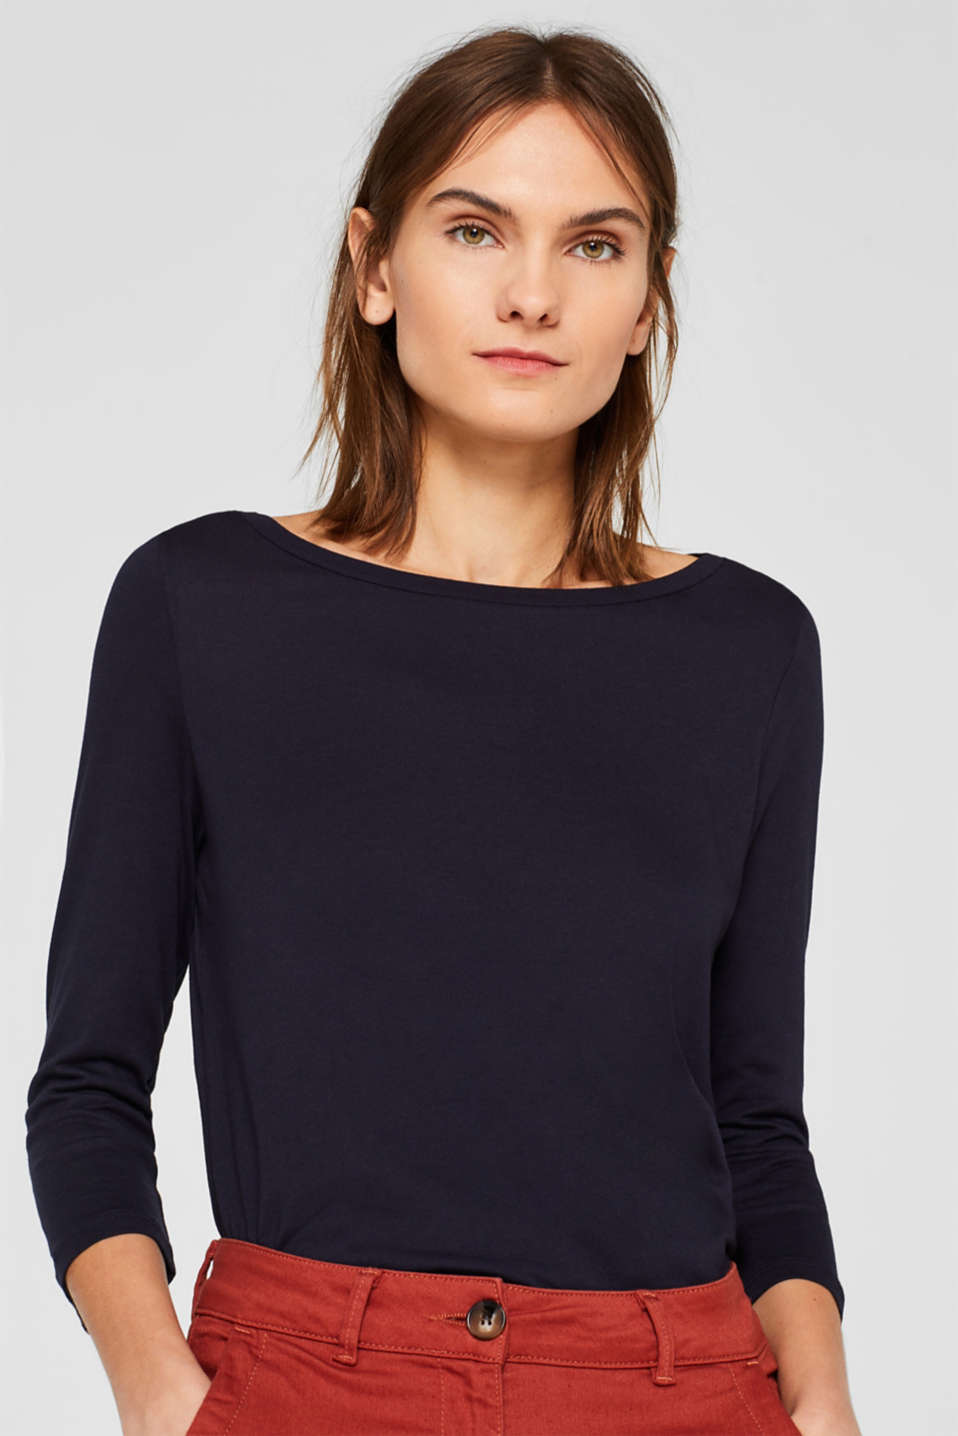 Two-pack: Long sleeve top with organic cotton, NAVY, detail image number 0